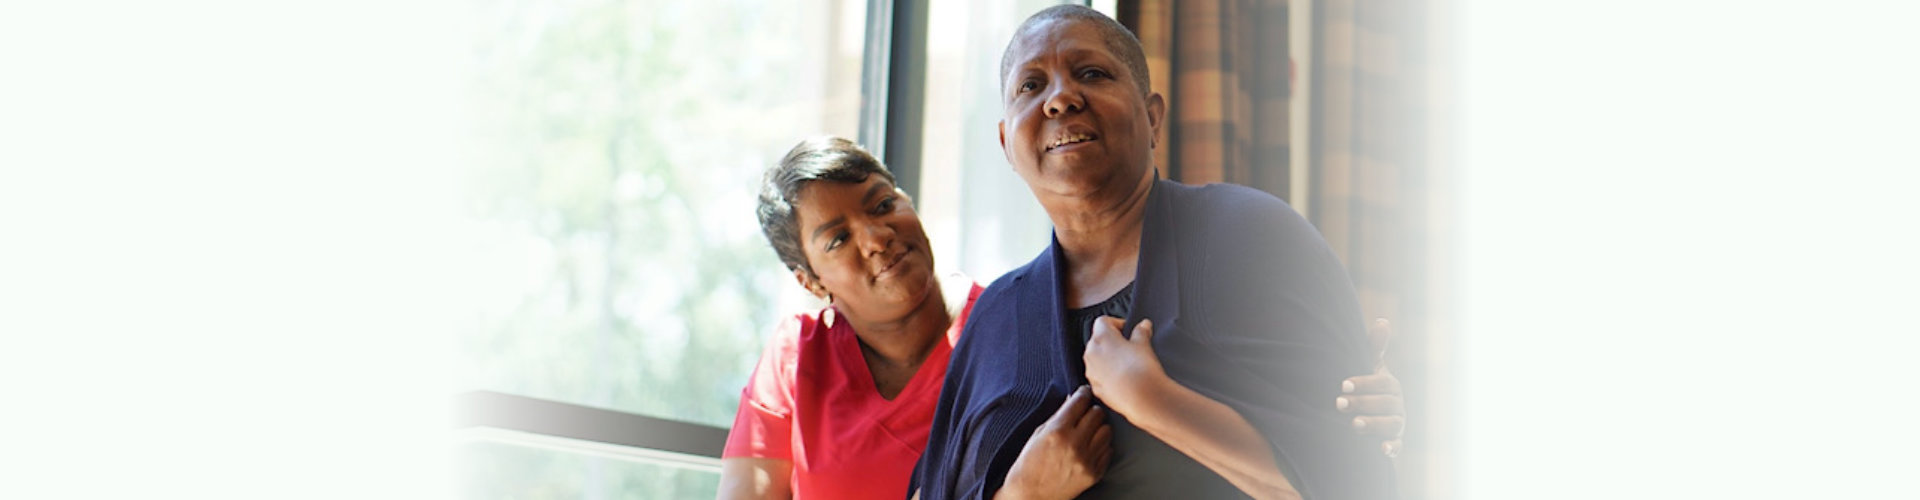 caring caregiver with senior woman